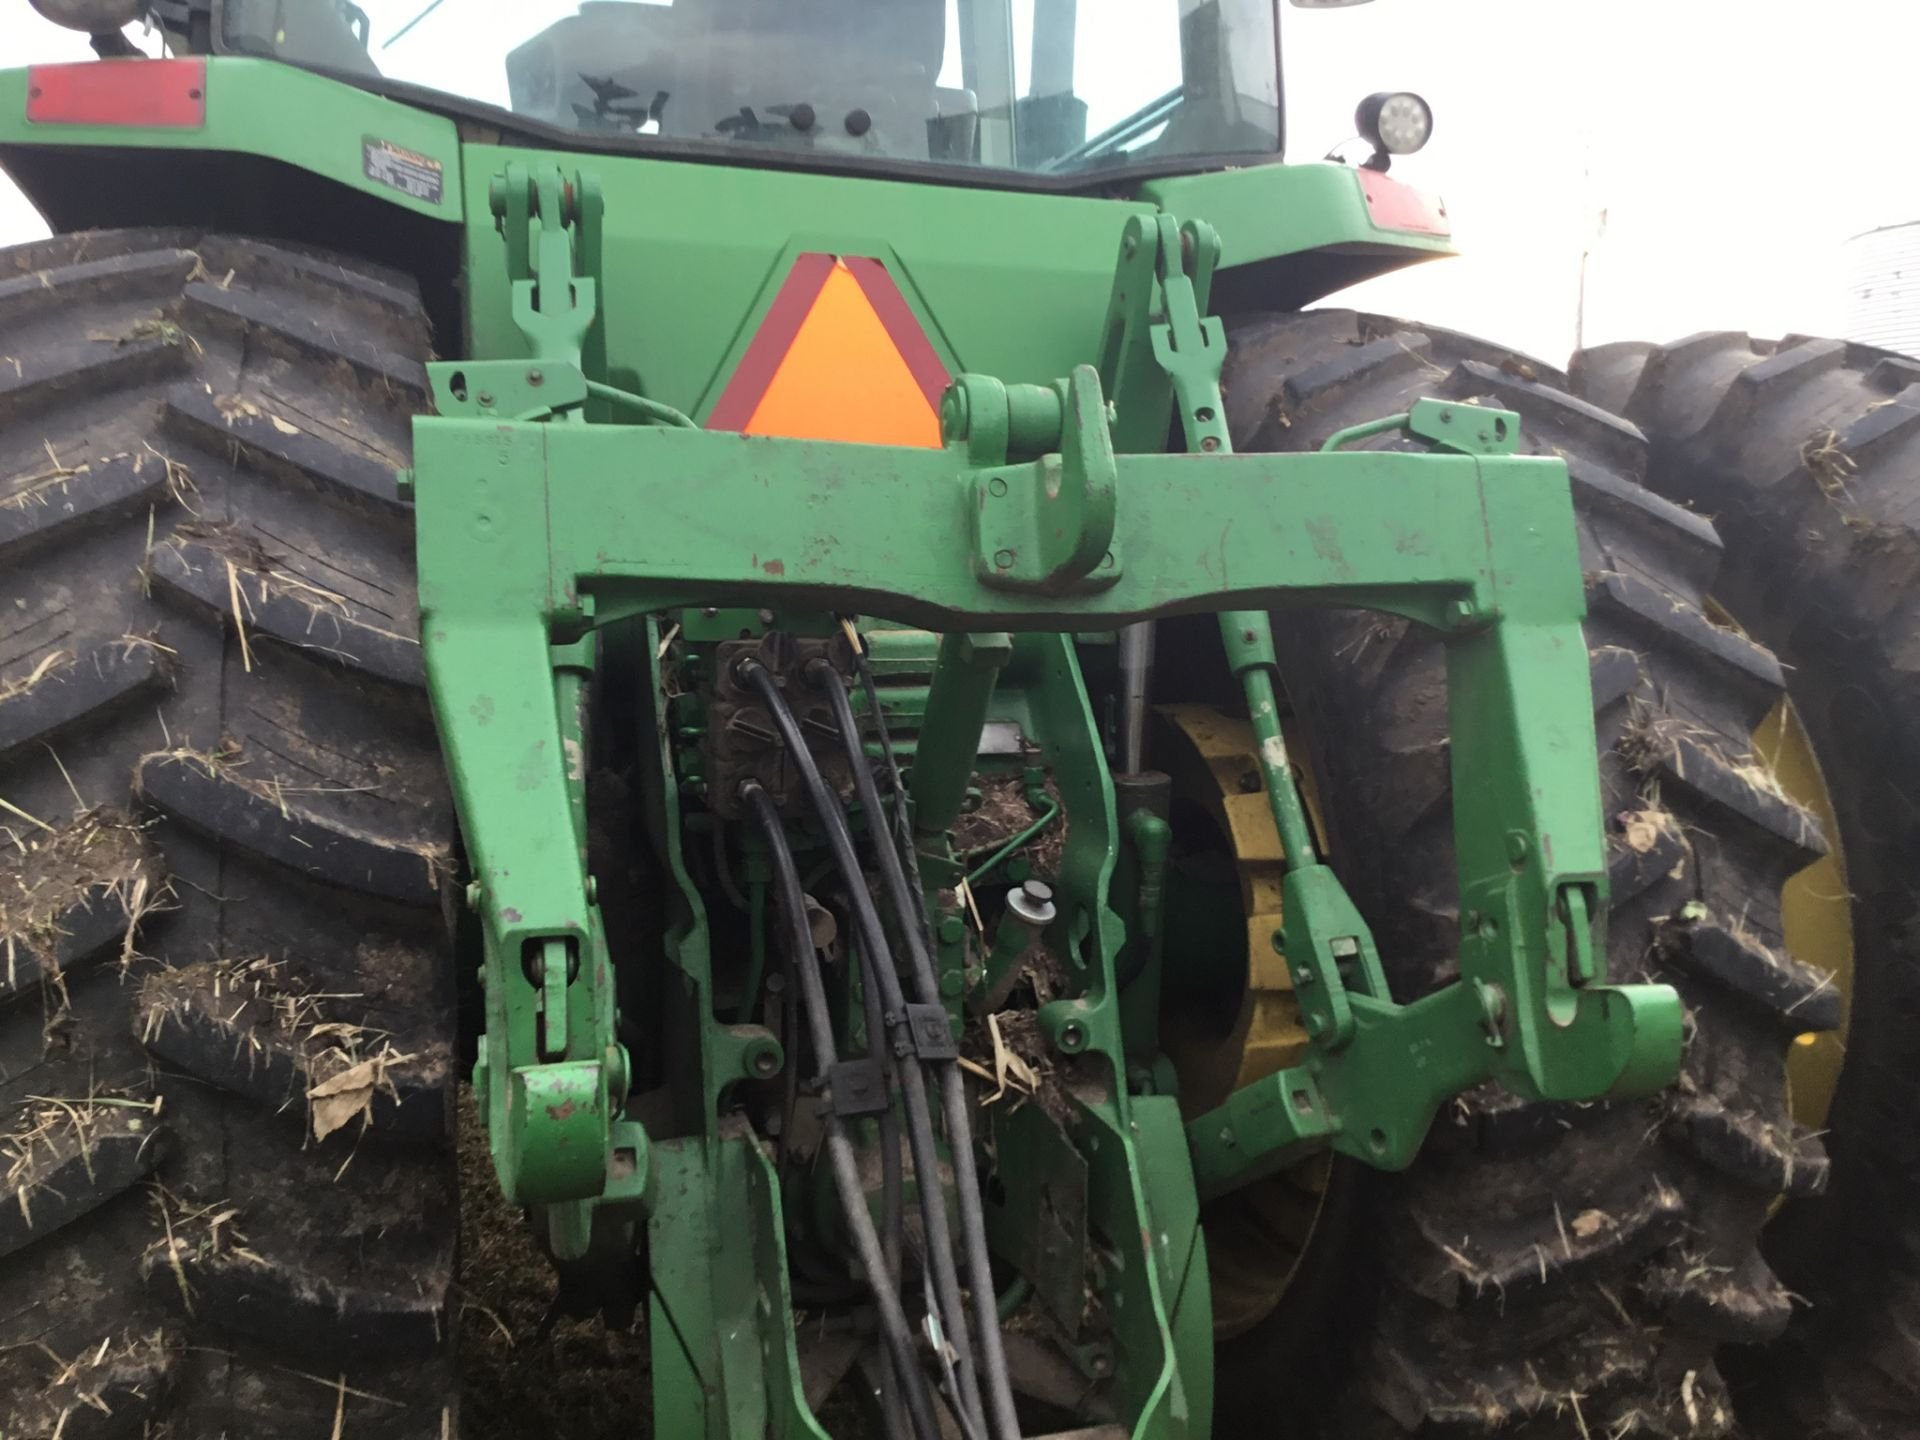 1997 John Deere 8300 MFWD, Power Shift, 3 Hydraulic Remotes, 3 Pt., Quick Hitch, PTO, Green Star - Image 11 of 25